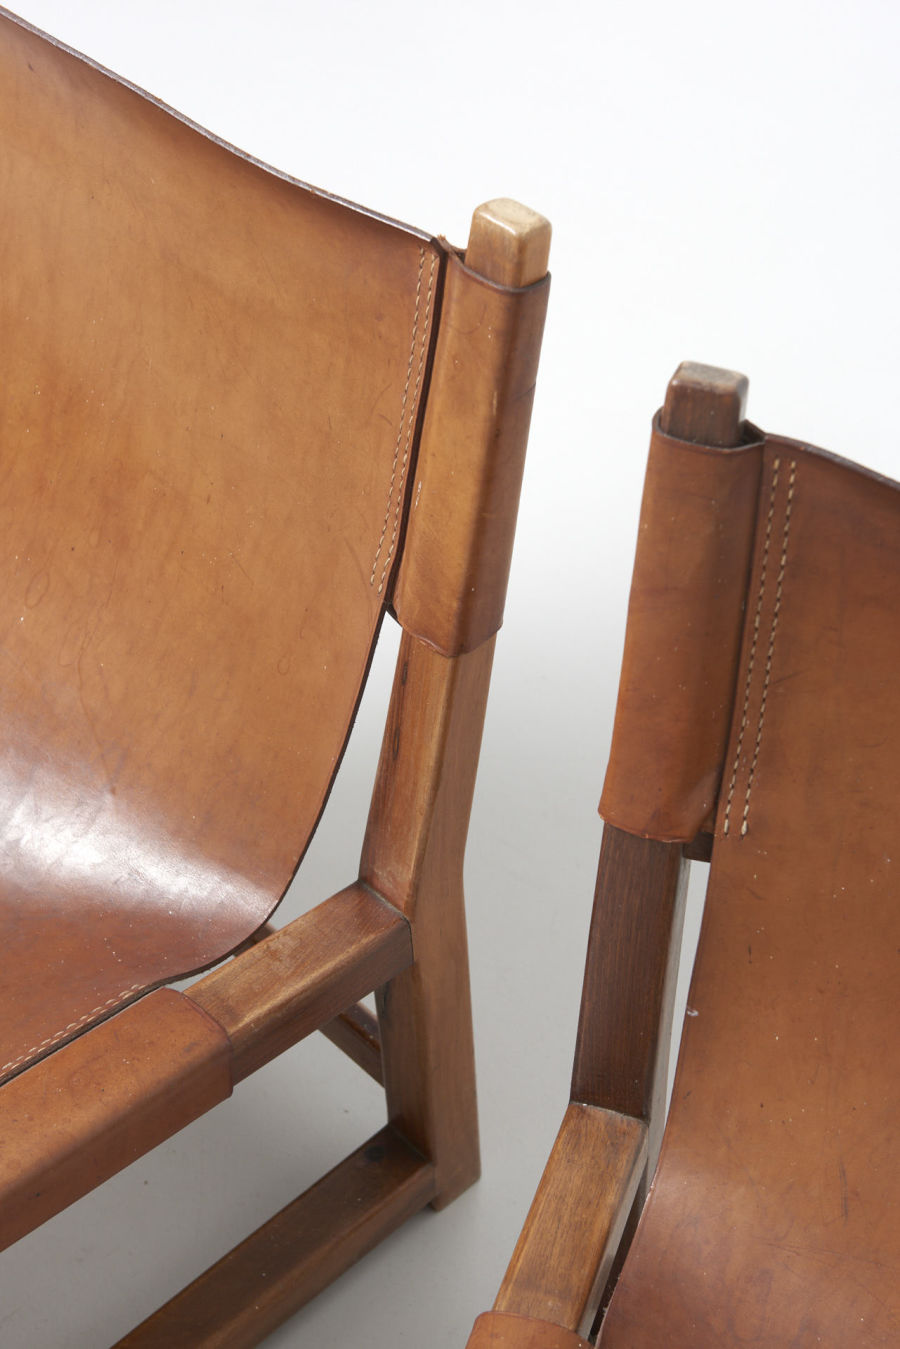 modestfurniture-vintage-2096-riaza-chair-saddle-leather-paco-munoz07_1